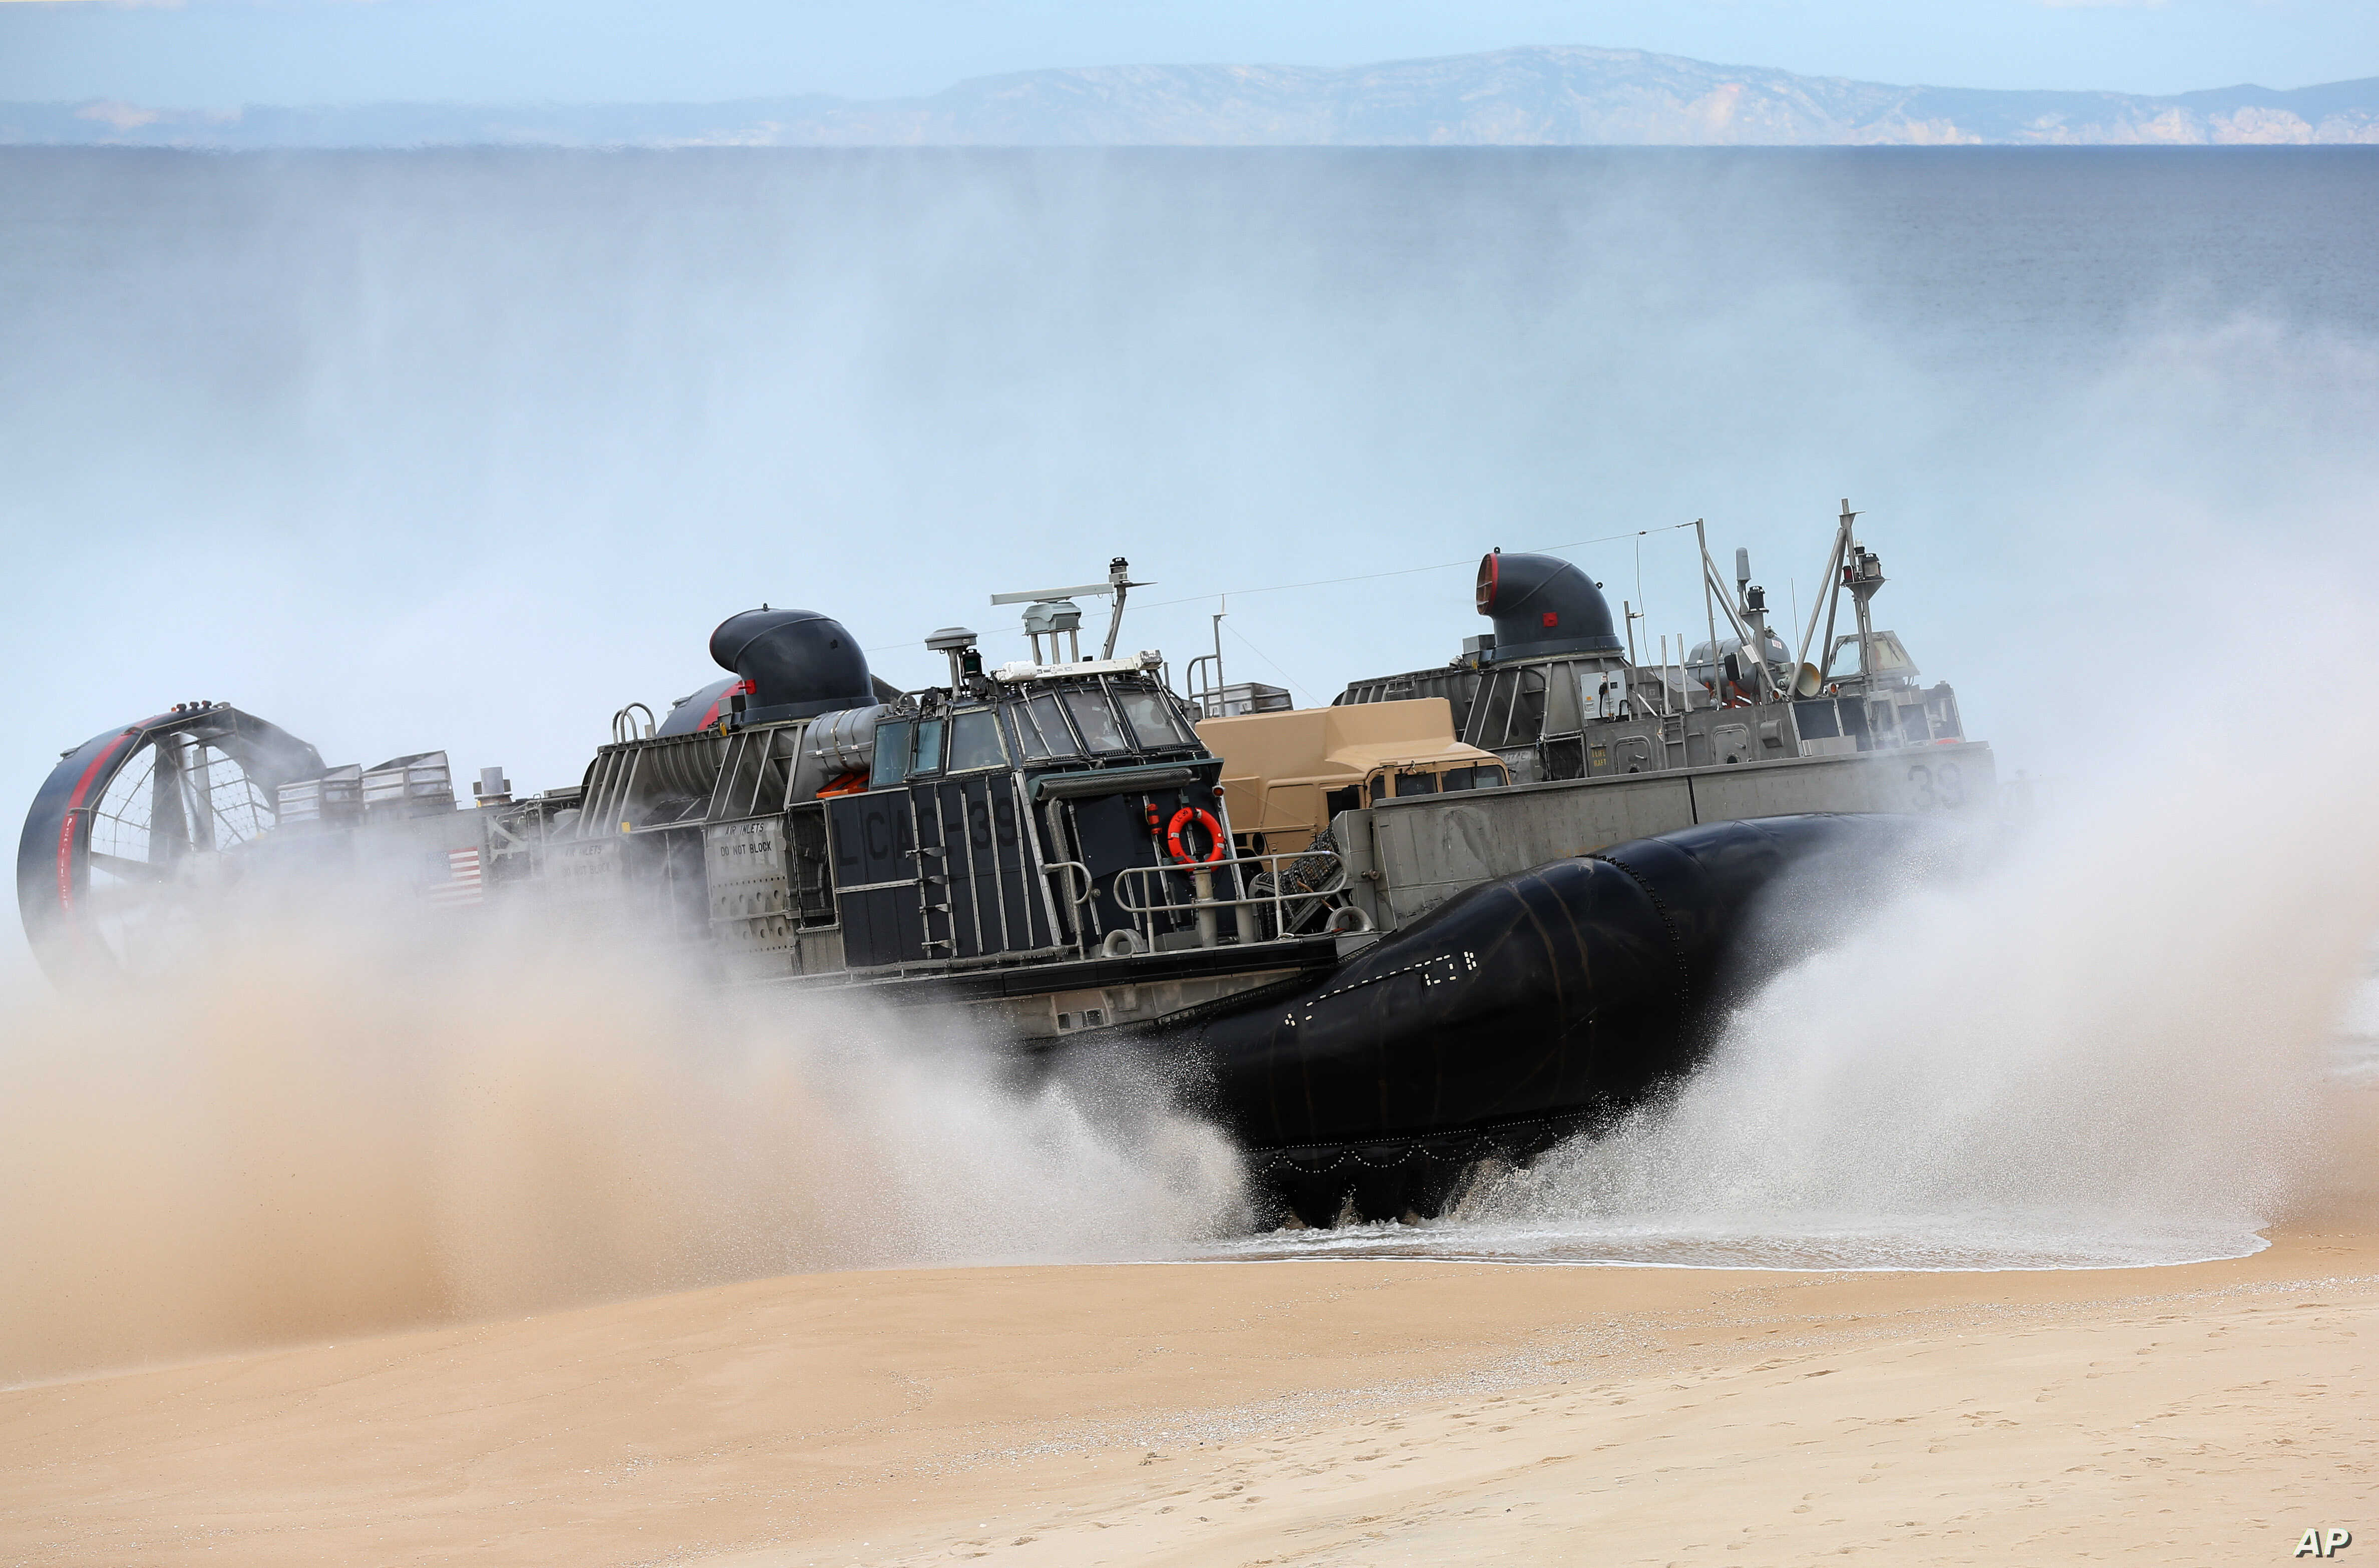 A US Navy hovercraft approaches the beach at the beginning of the NATO Trident Juncture exercise 2015 at Raposa Media beach in Pinheiro da Cruz, south of Lisbon, Oct. 20, 2015.